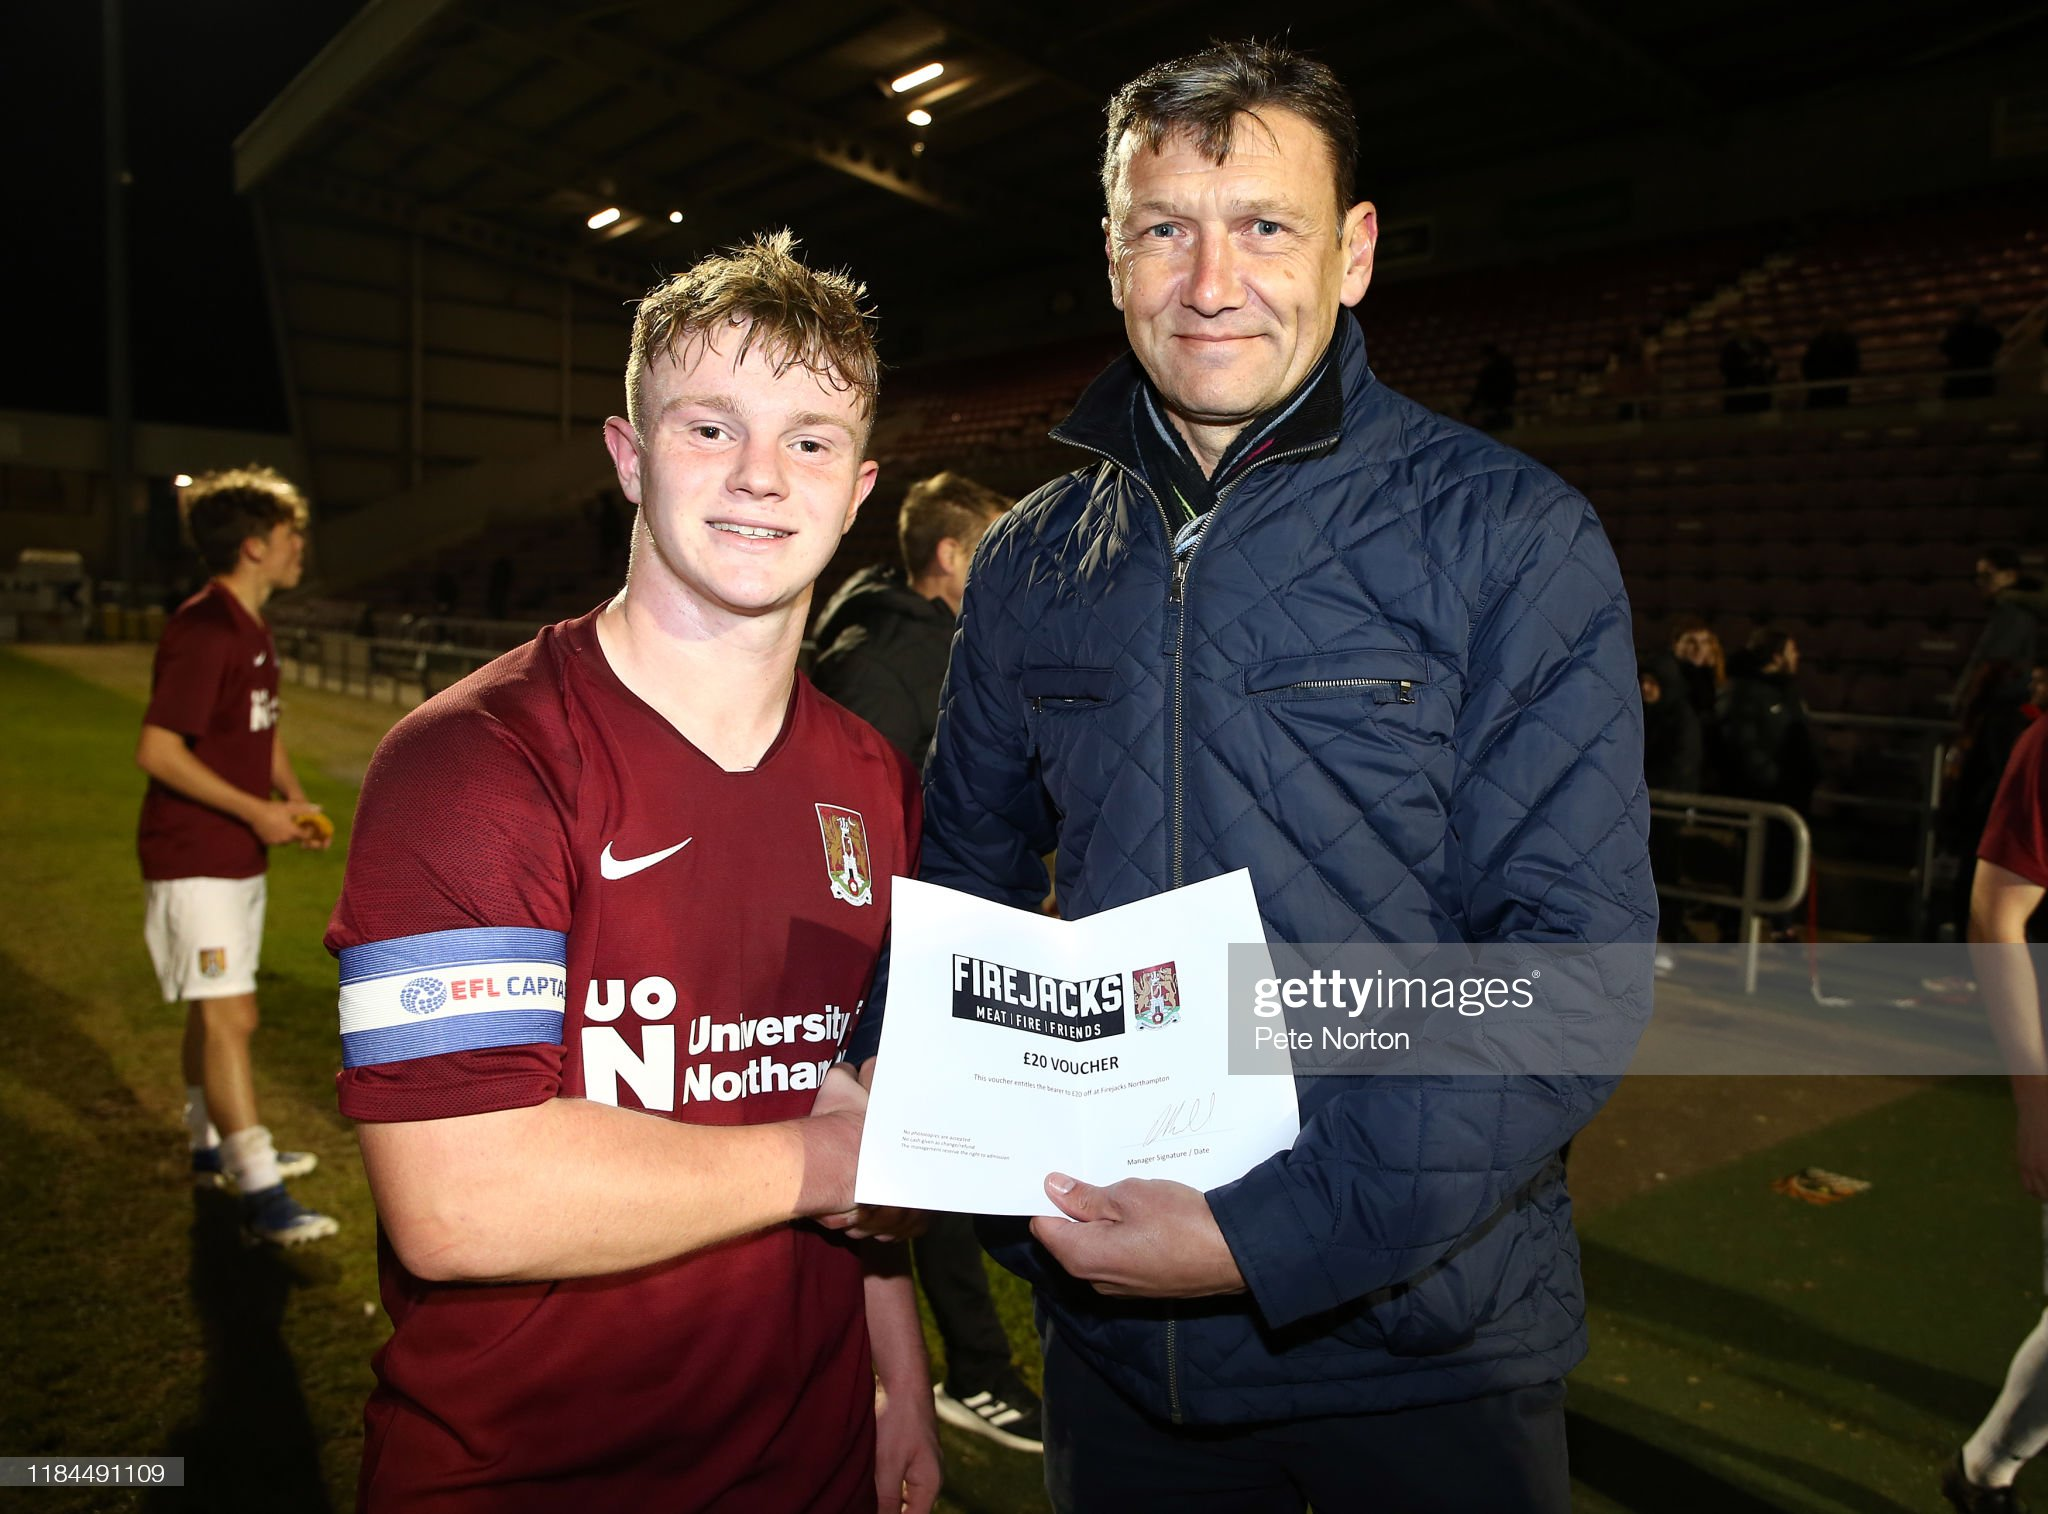 https://media.gettyimages.com/photos/haydn-price-of-northampton-town-receives-his-player-of-the-match-picture-id1184491109?s=2048x2048